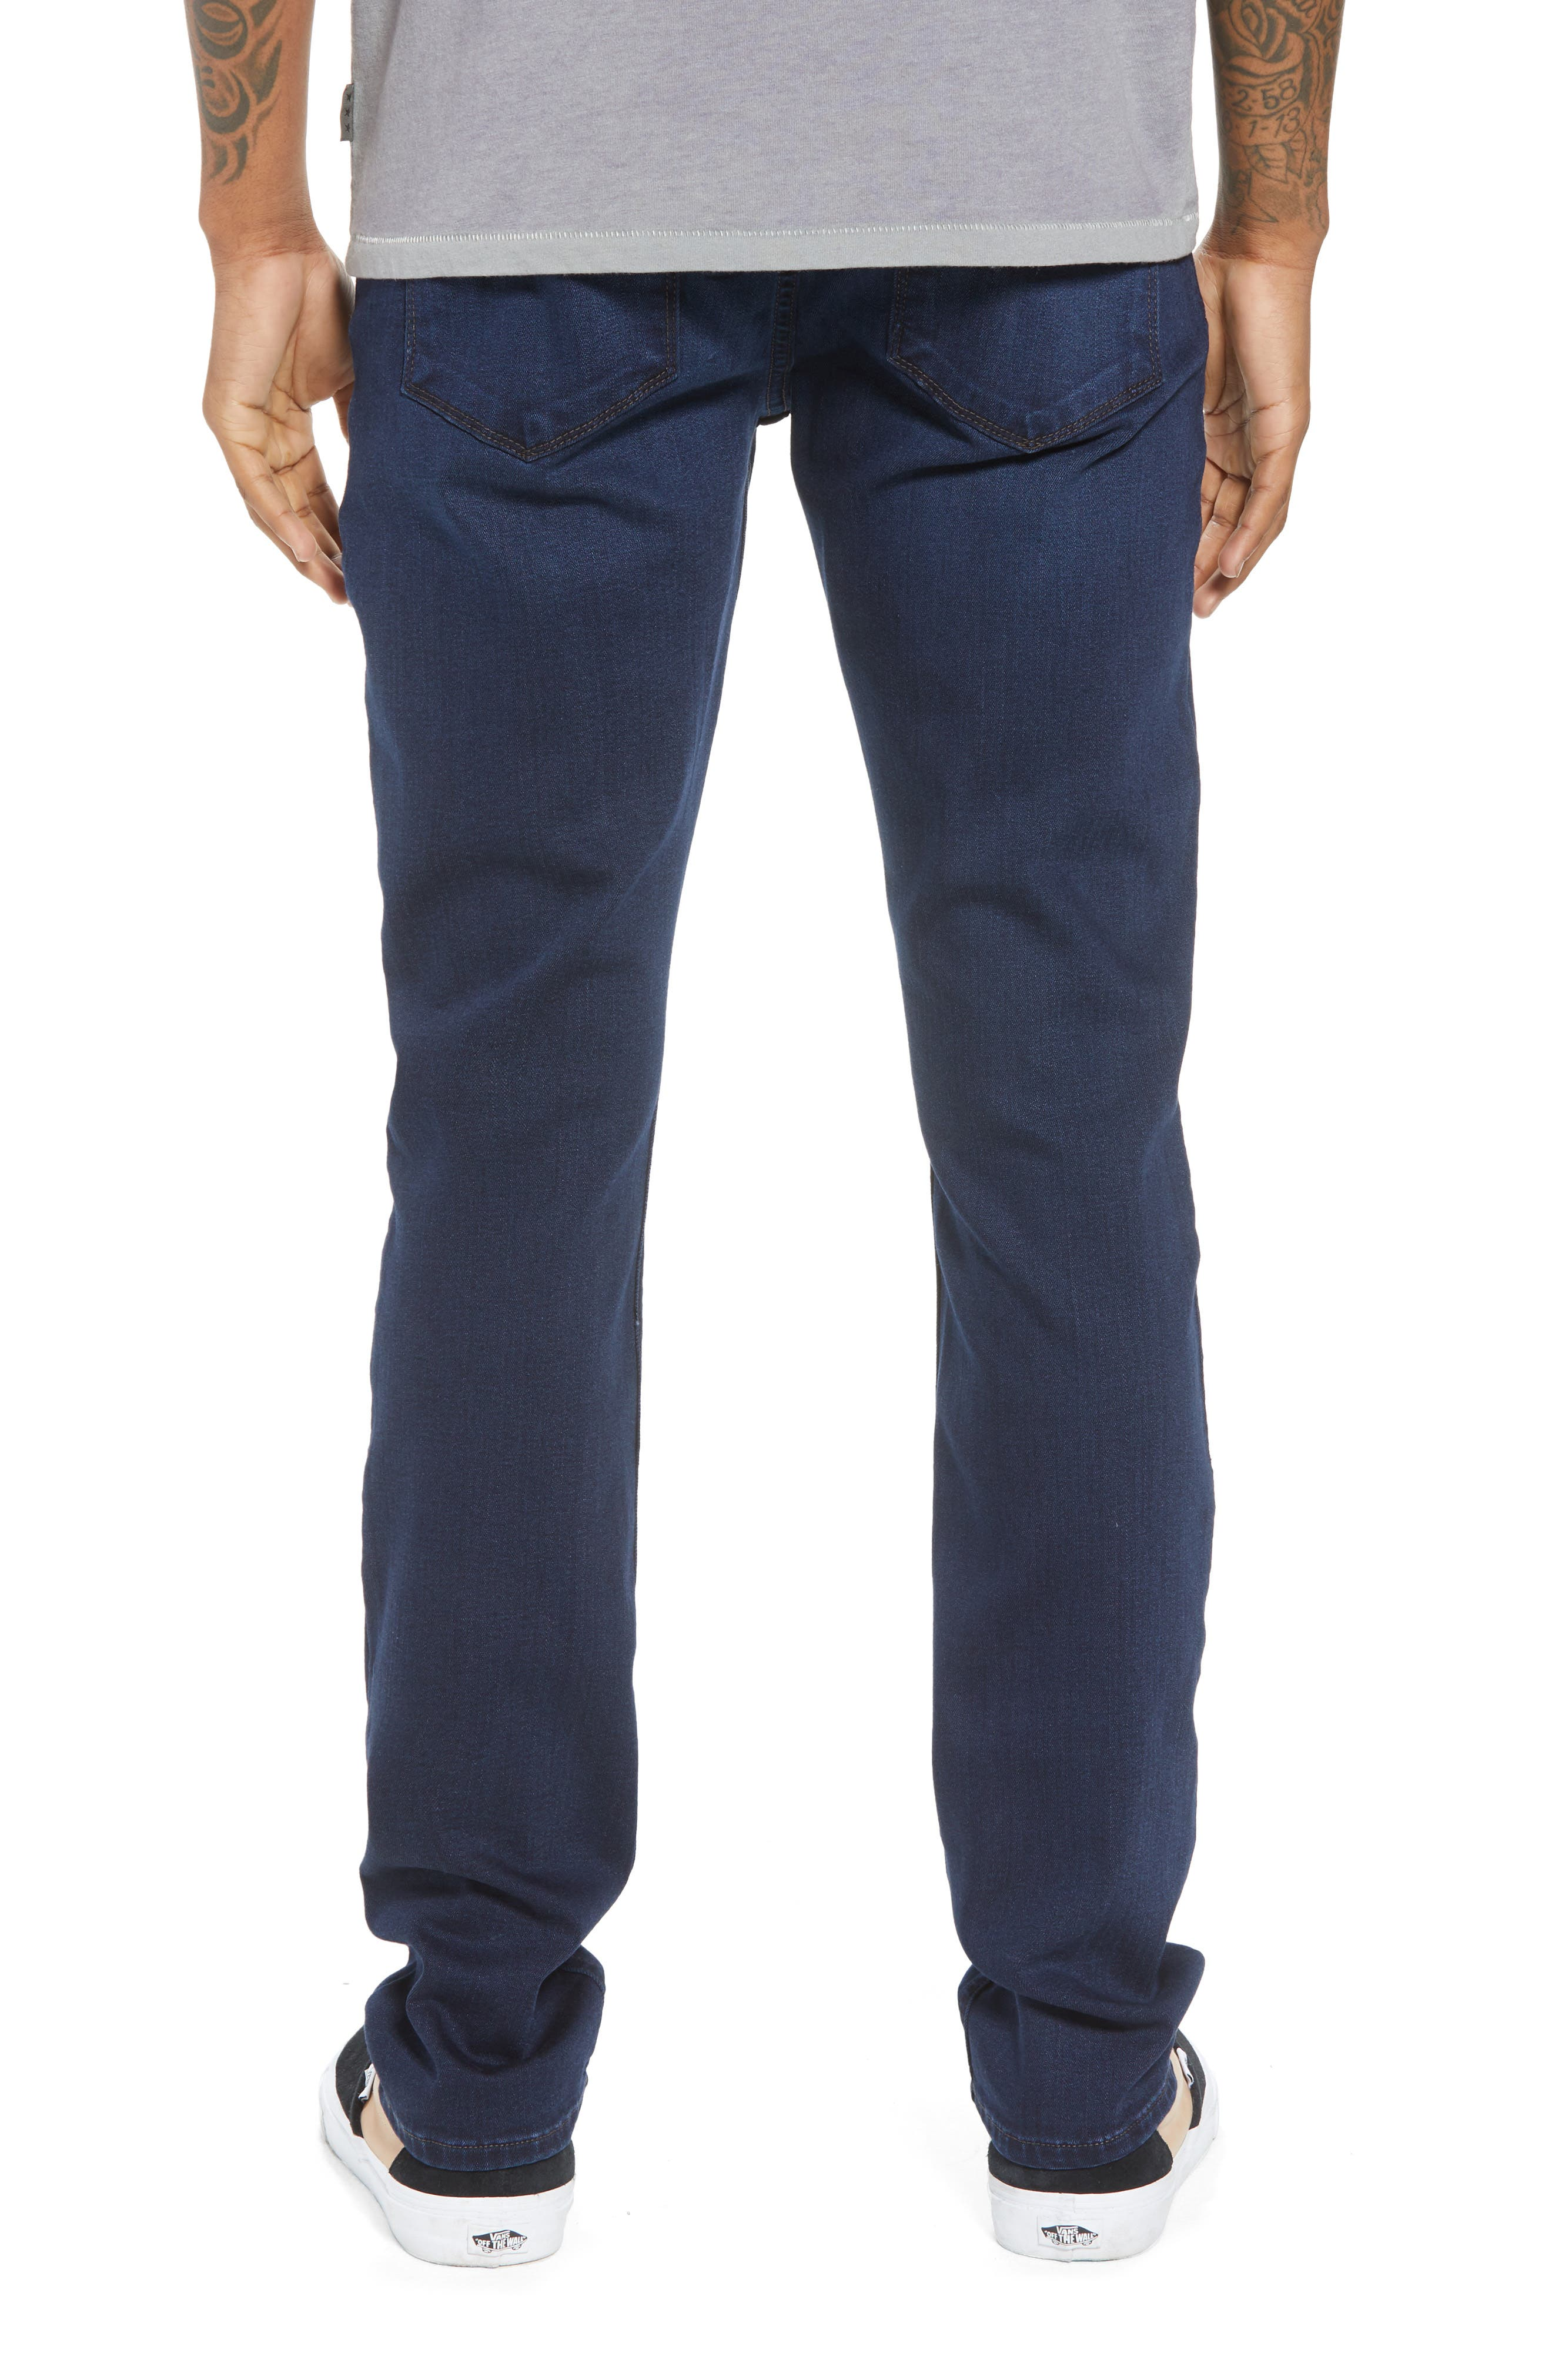 Transcend - Croft Skinny Fit Jeans,                             Alternate thumbnail 2, color,                             HAYWORD